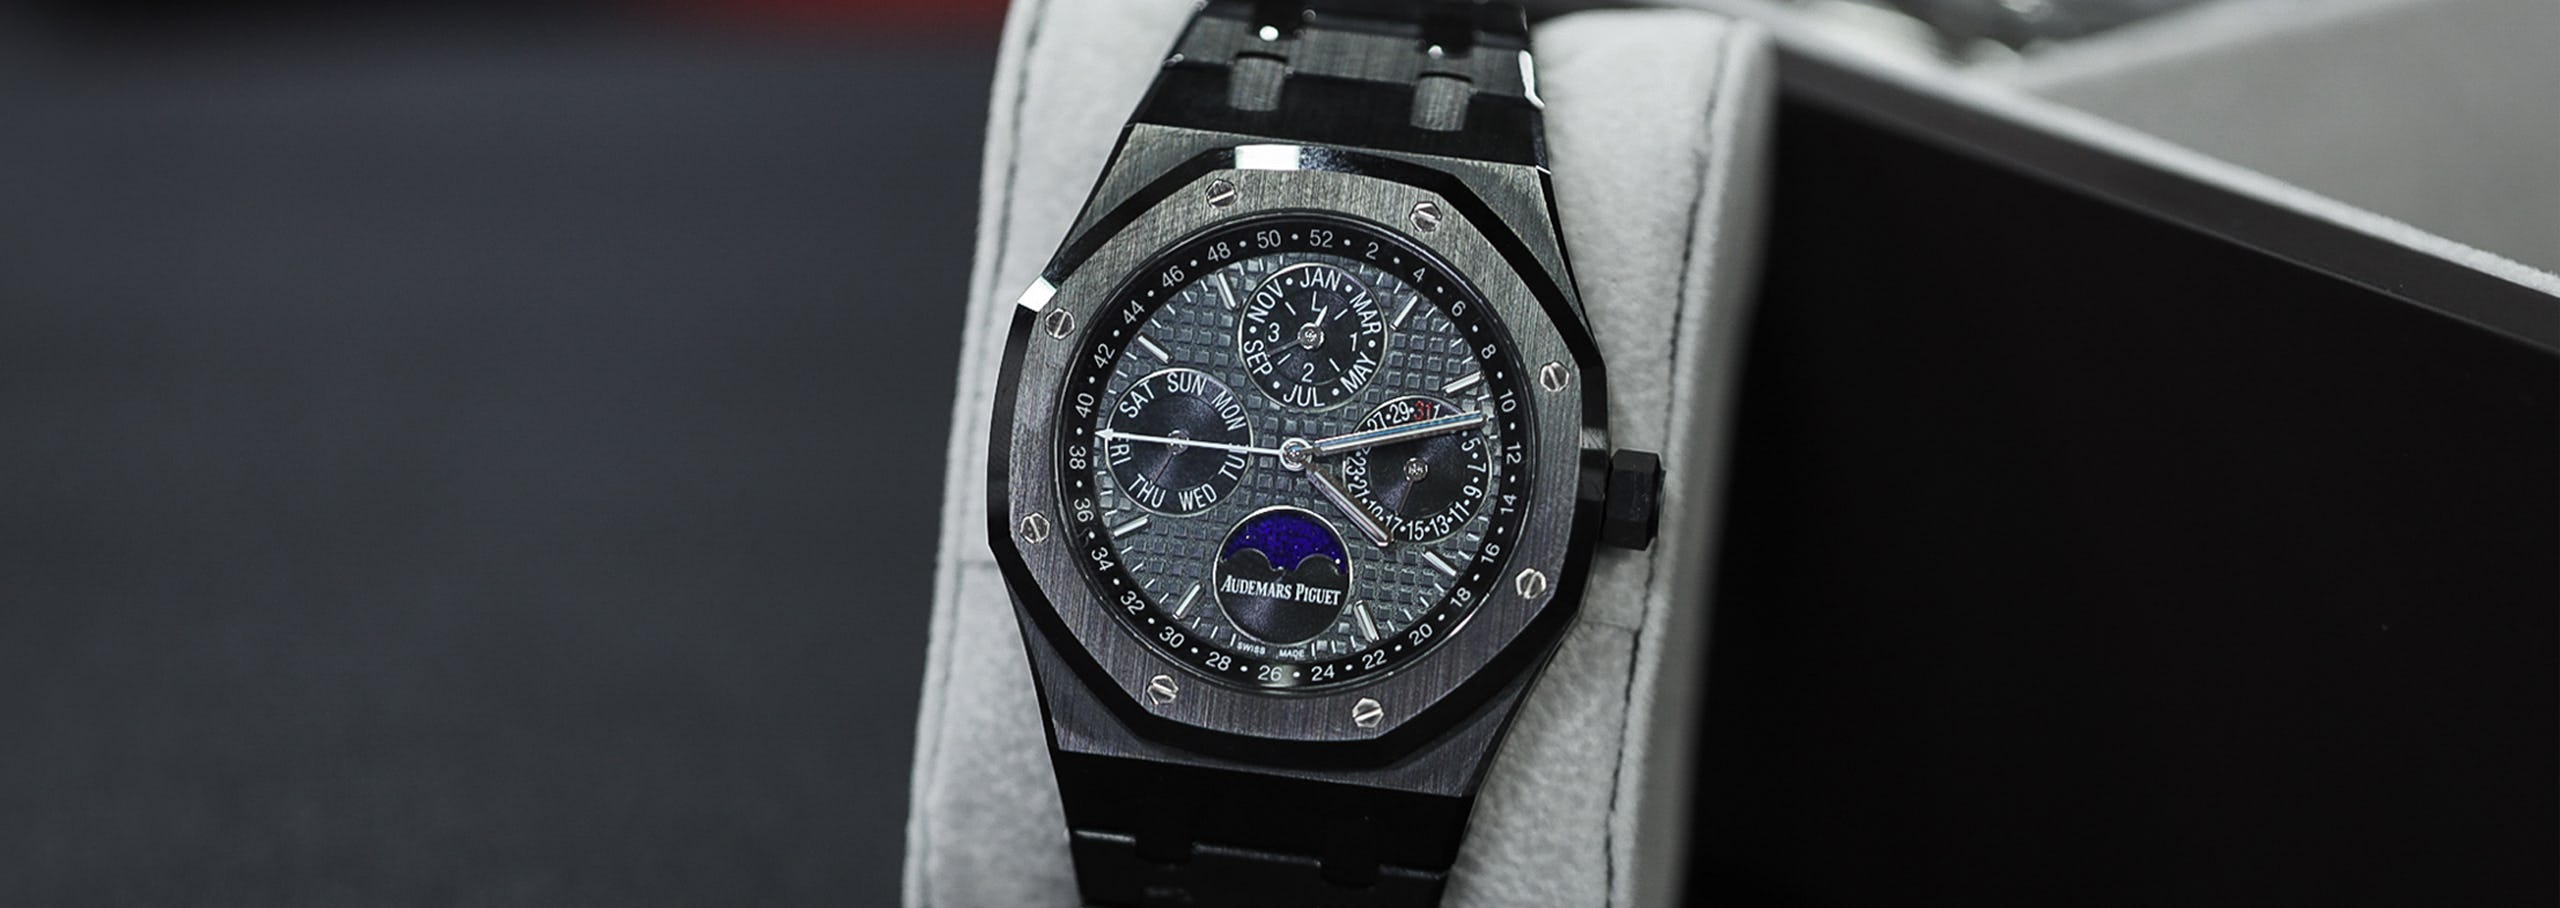 In Conversation: The Art of Collecting Rolex, Richard Mille, Porsche and More